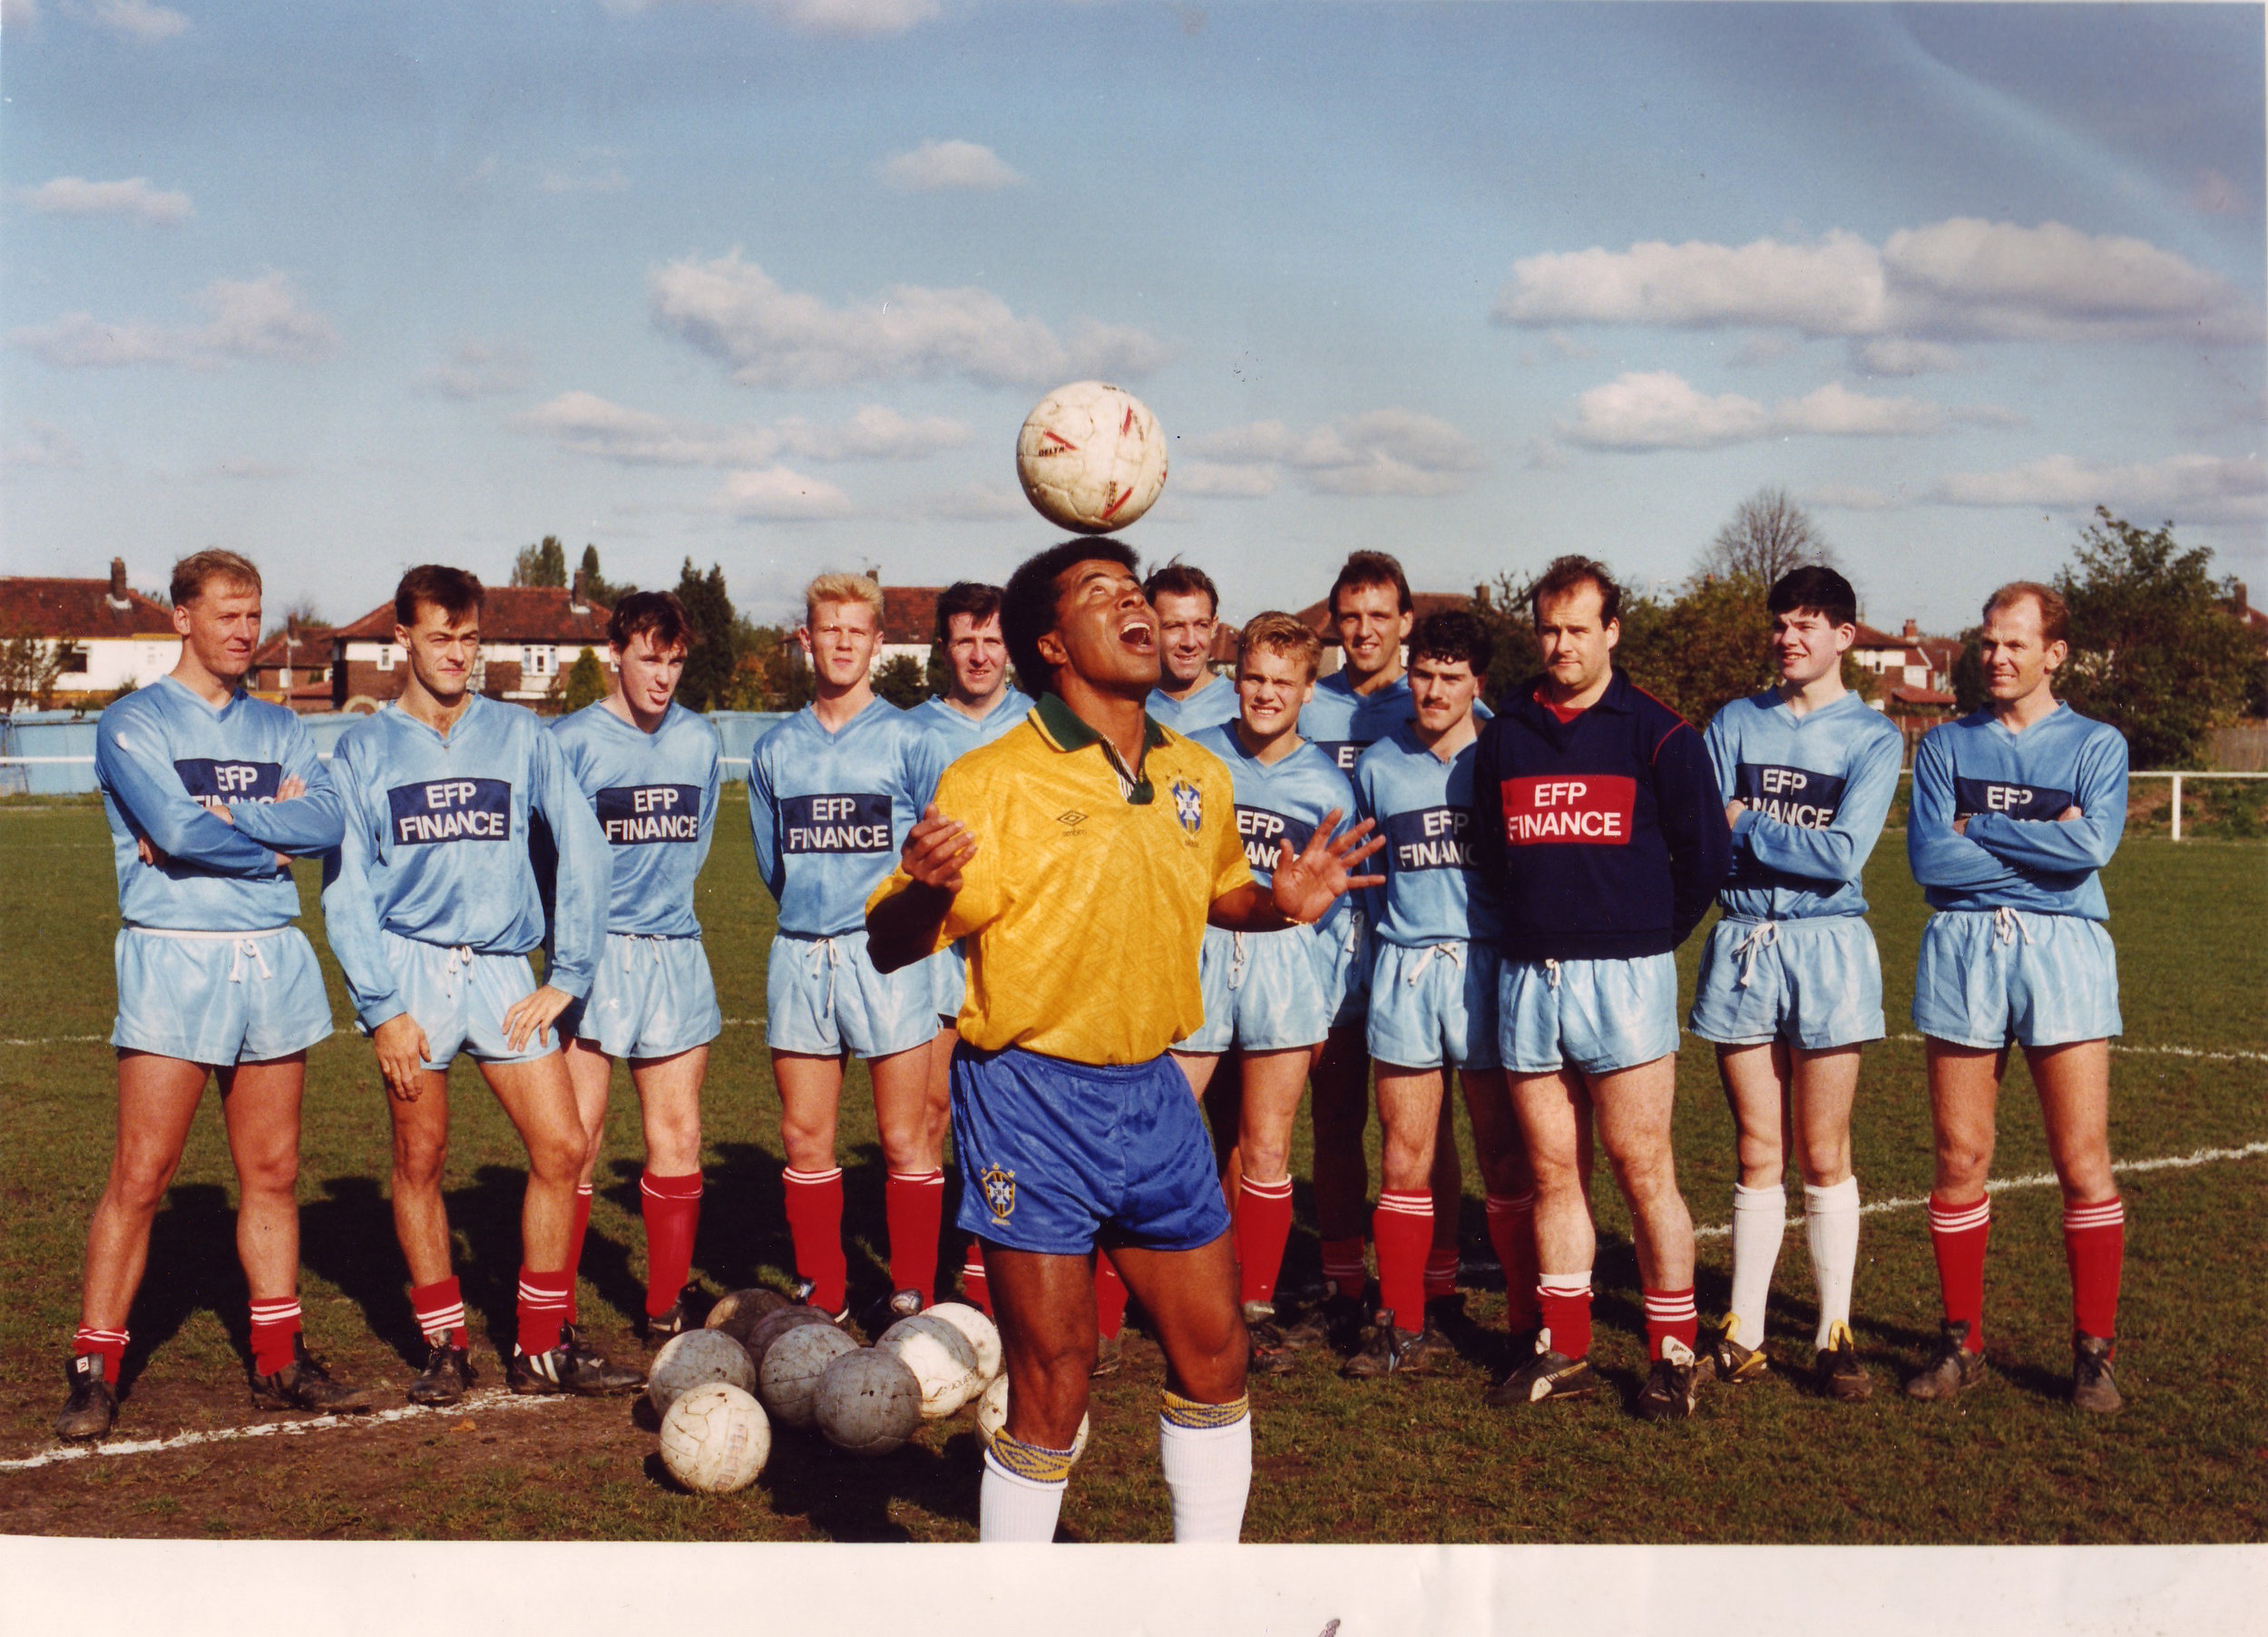 In 1991 Jairzinho visited Park Road. Here he is showing off his skills to the squad.